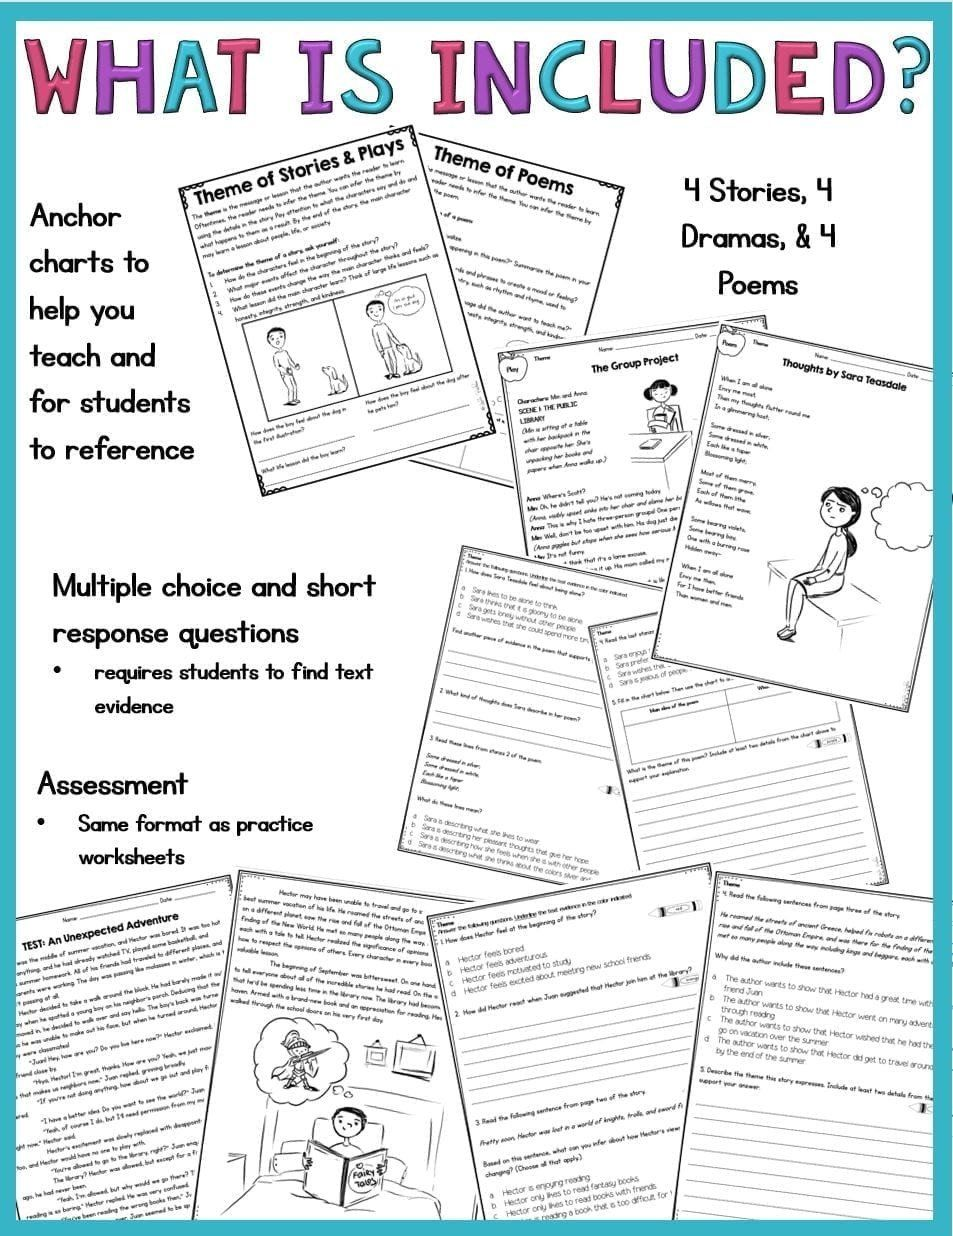 Story Structure Worksheets 4th Grade Theme In Stories Plays And Poems 4th Grade Rl 4 2 And 5th Grade Rl Poetry Worksheets Text Evidence Text Features Worksheet